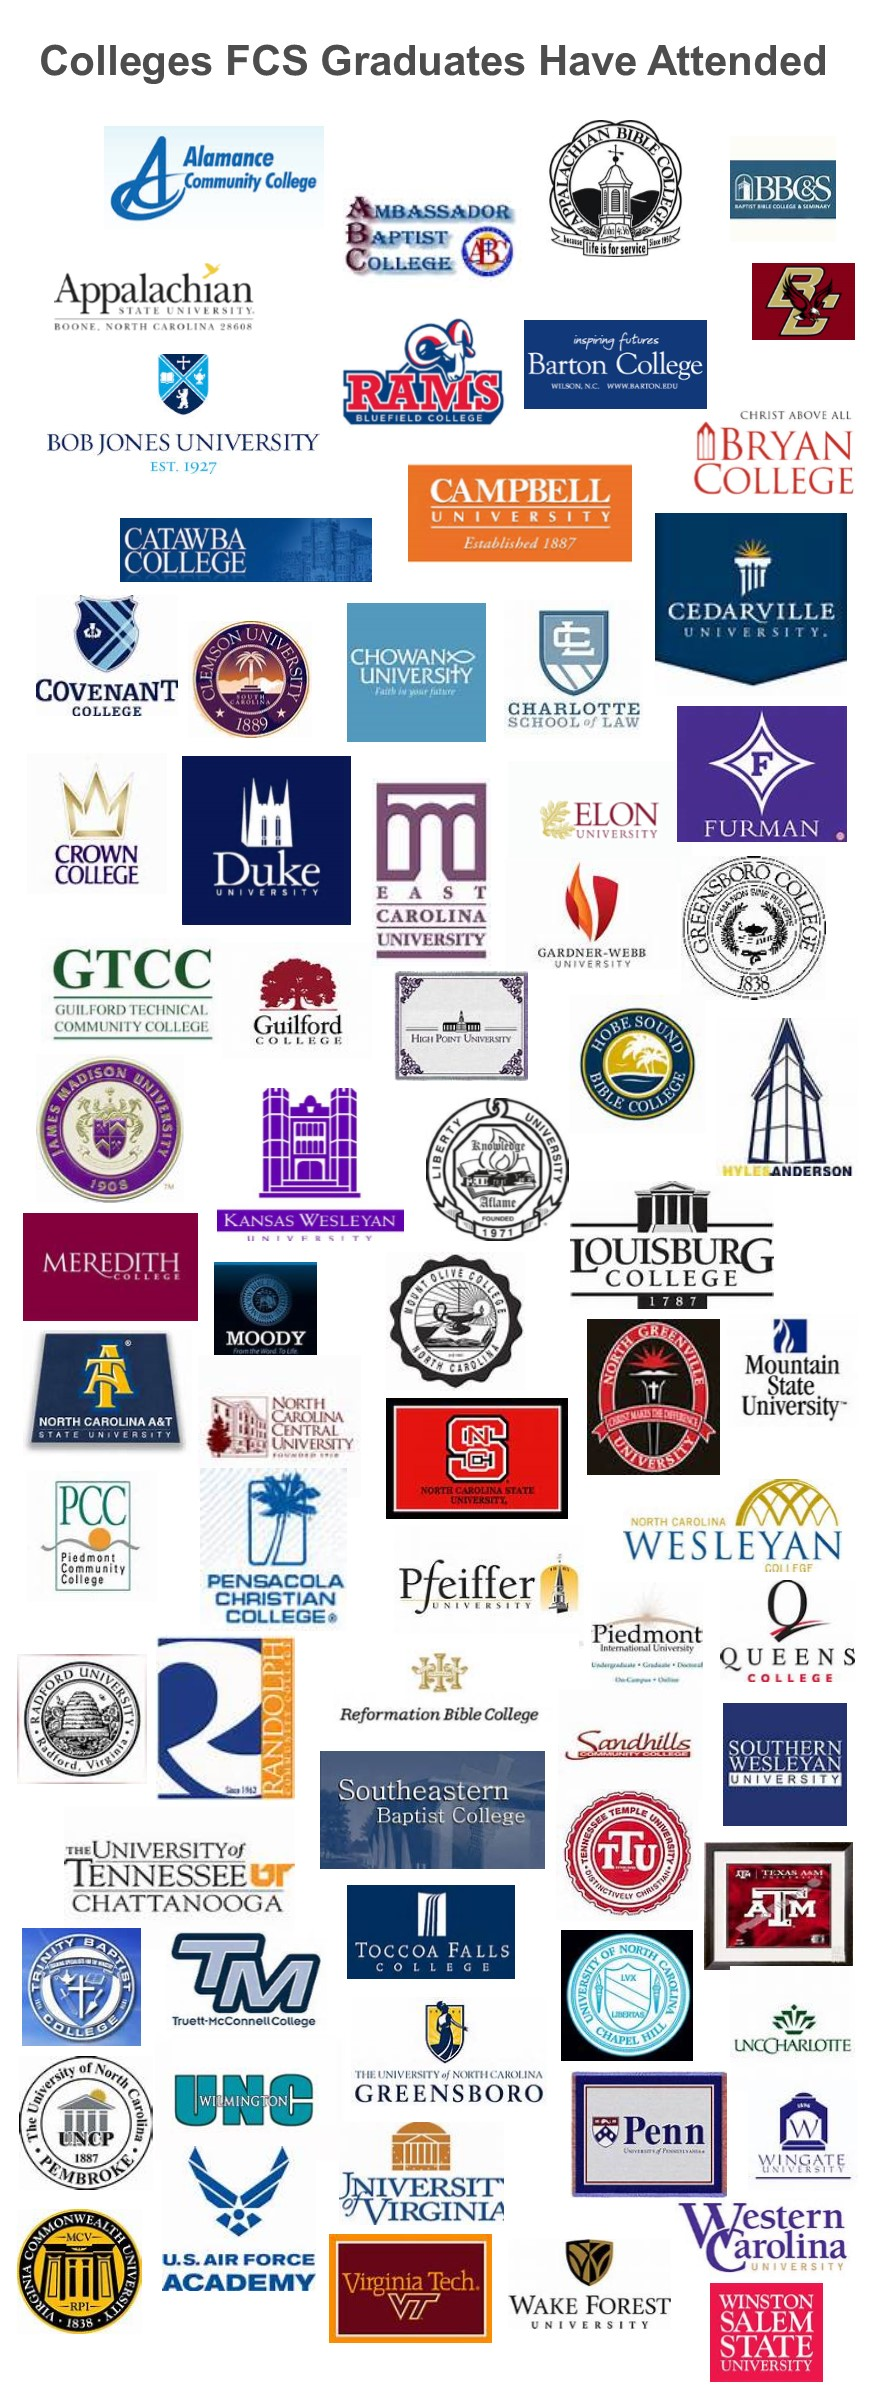 colleges attended